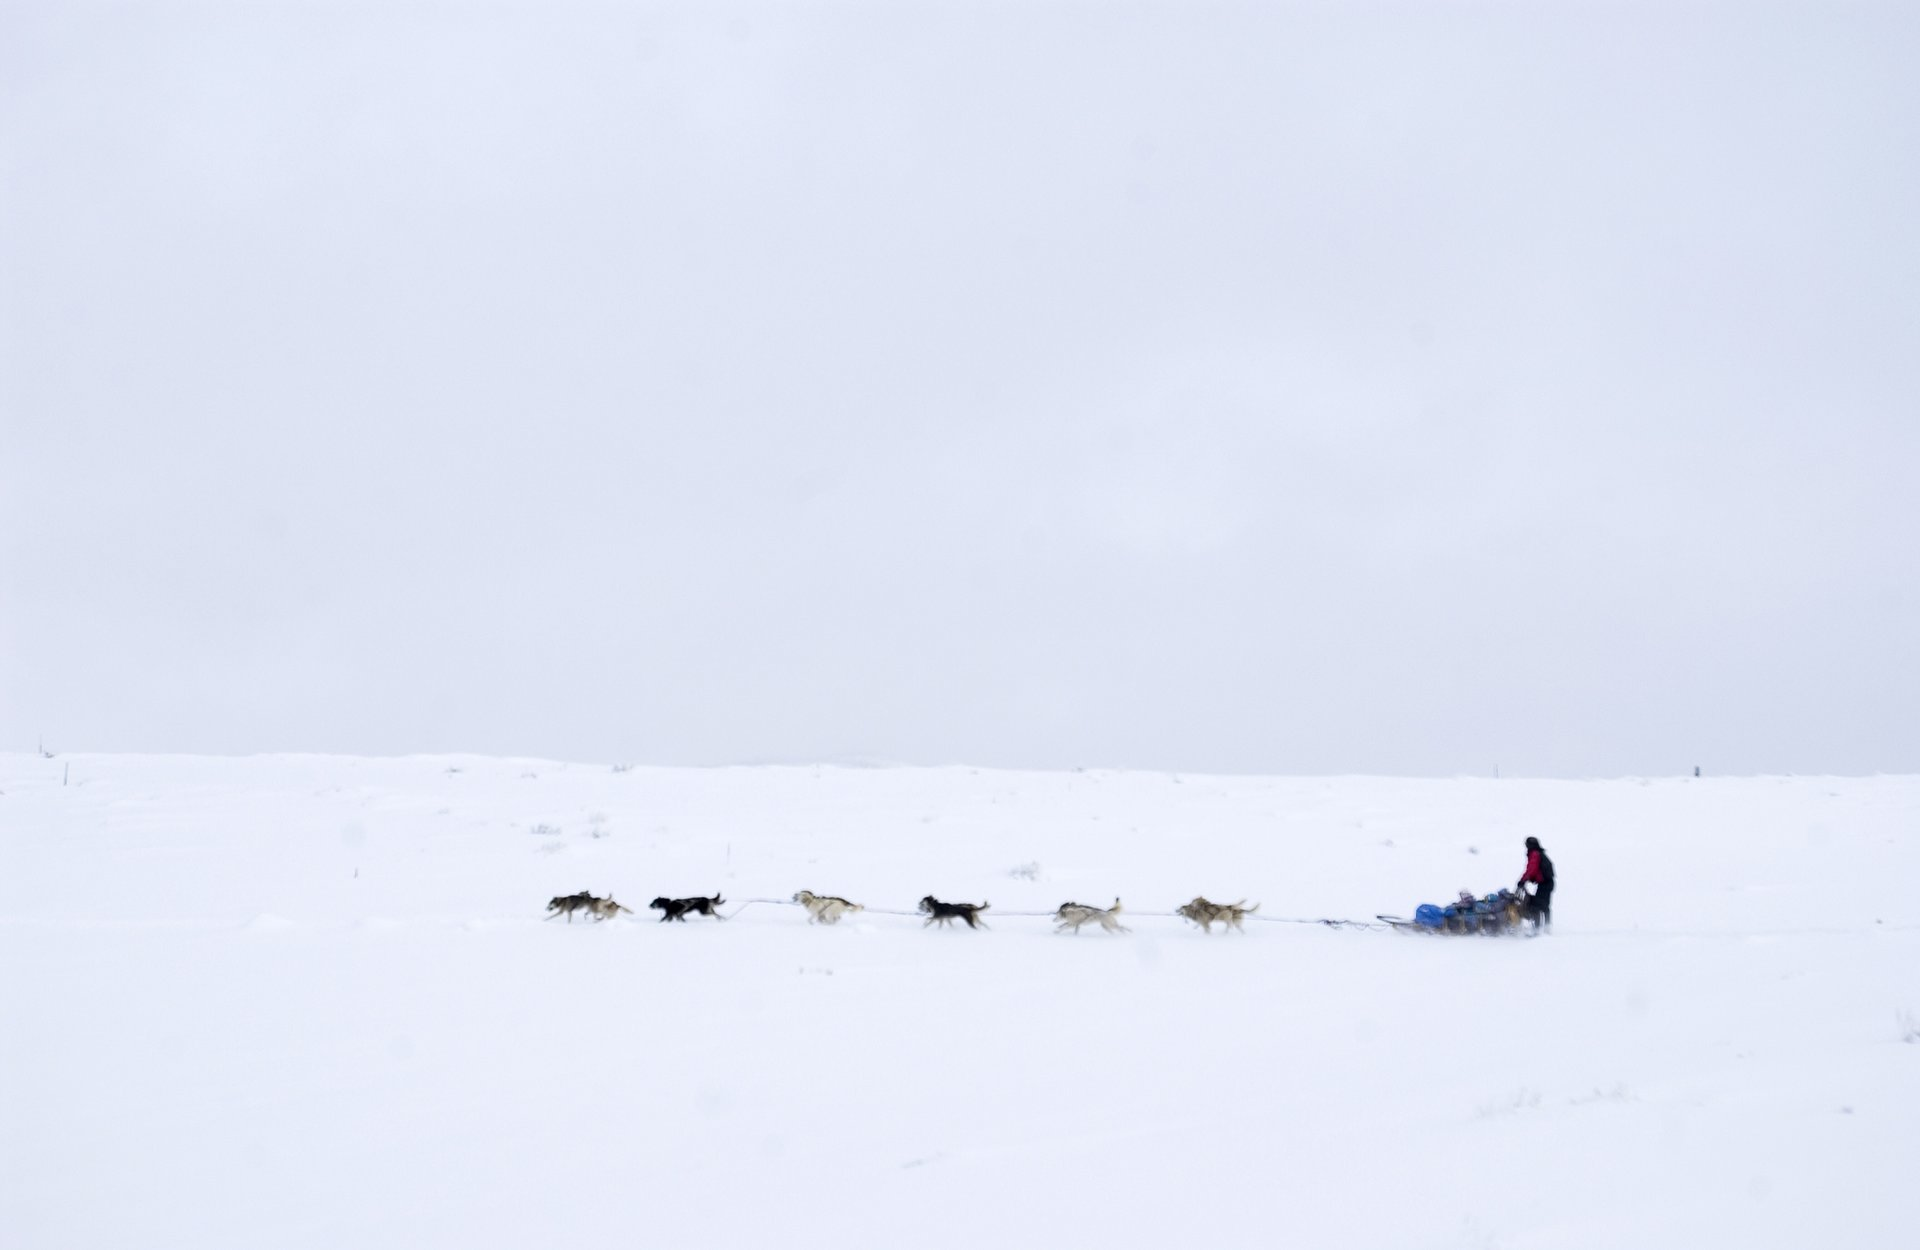 A sled dog team pulls its passengers through a winter landscape near Edwards 2019